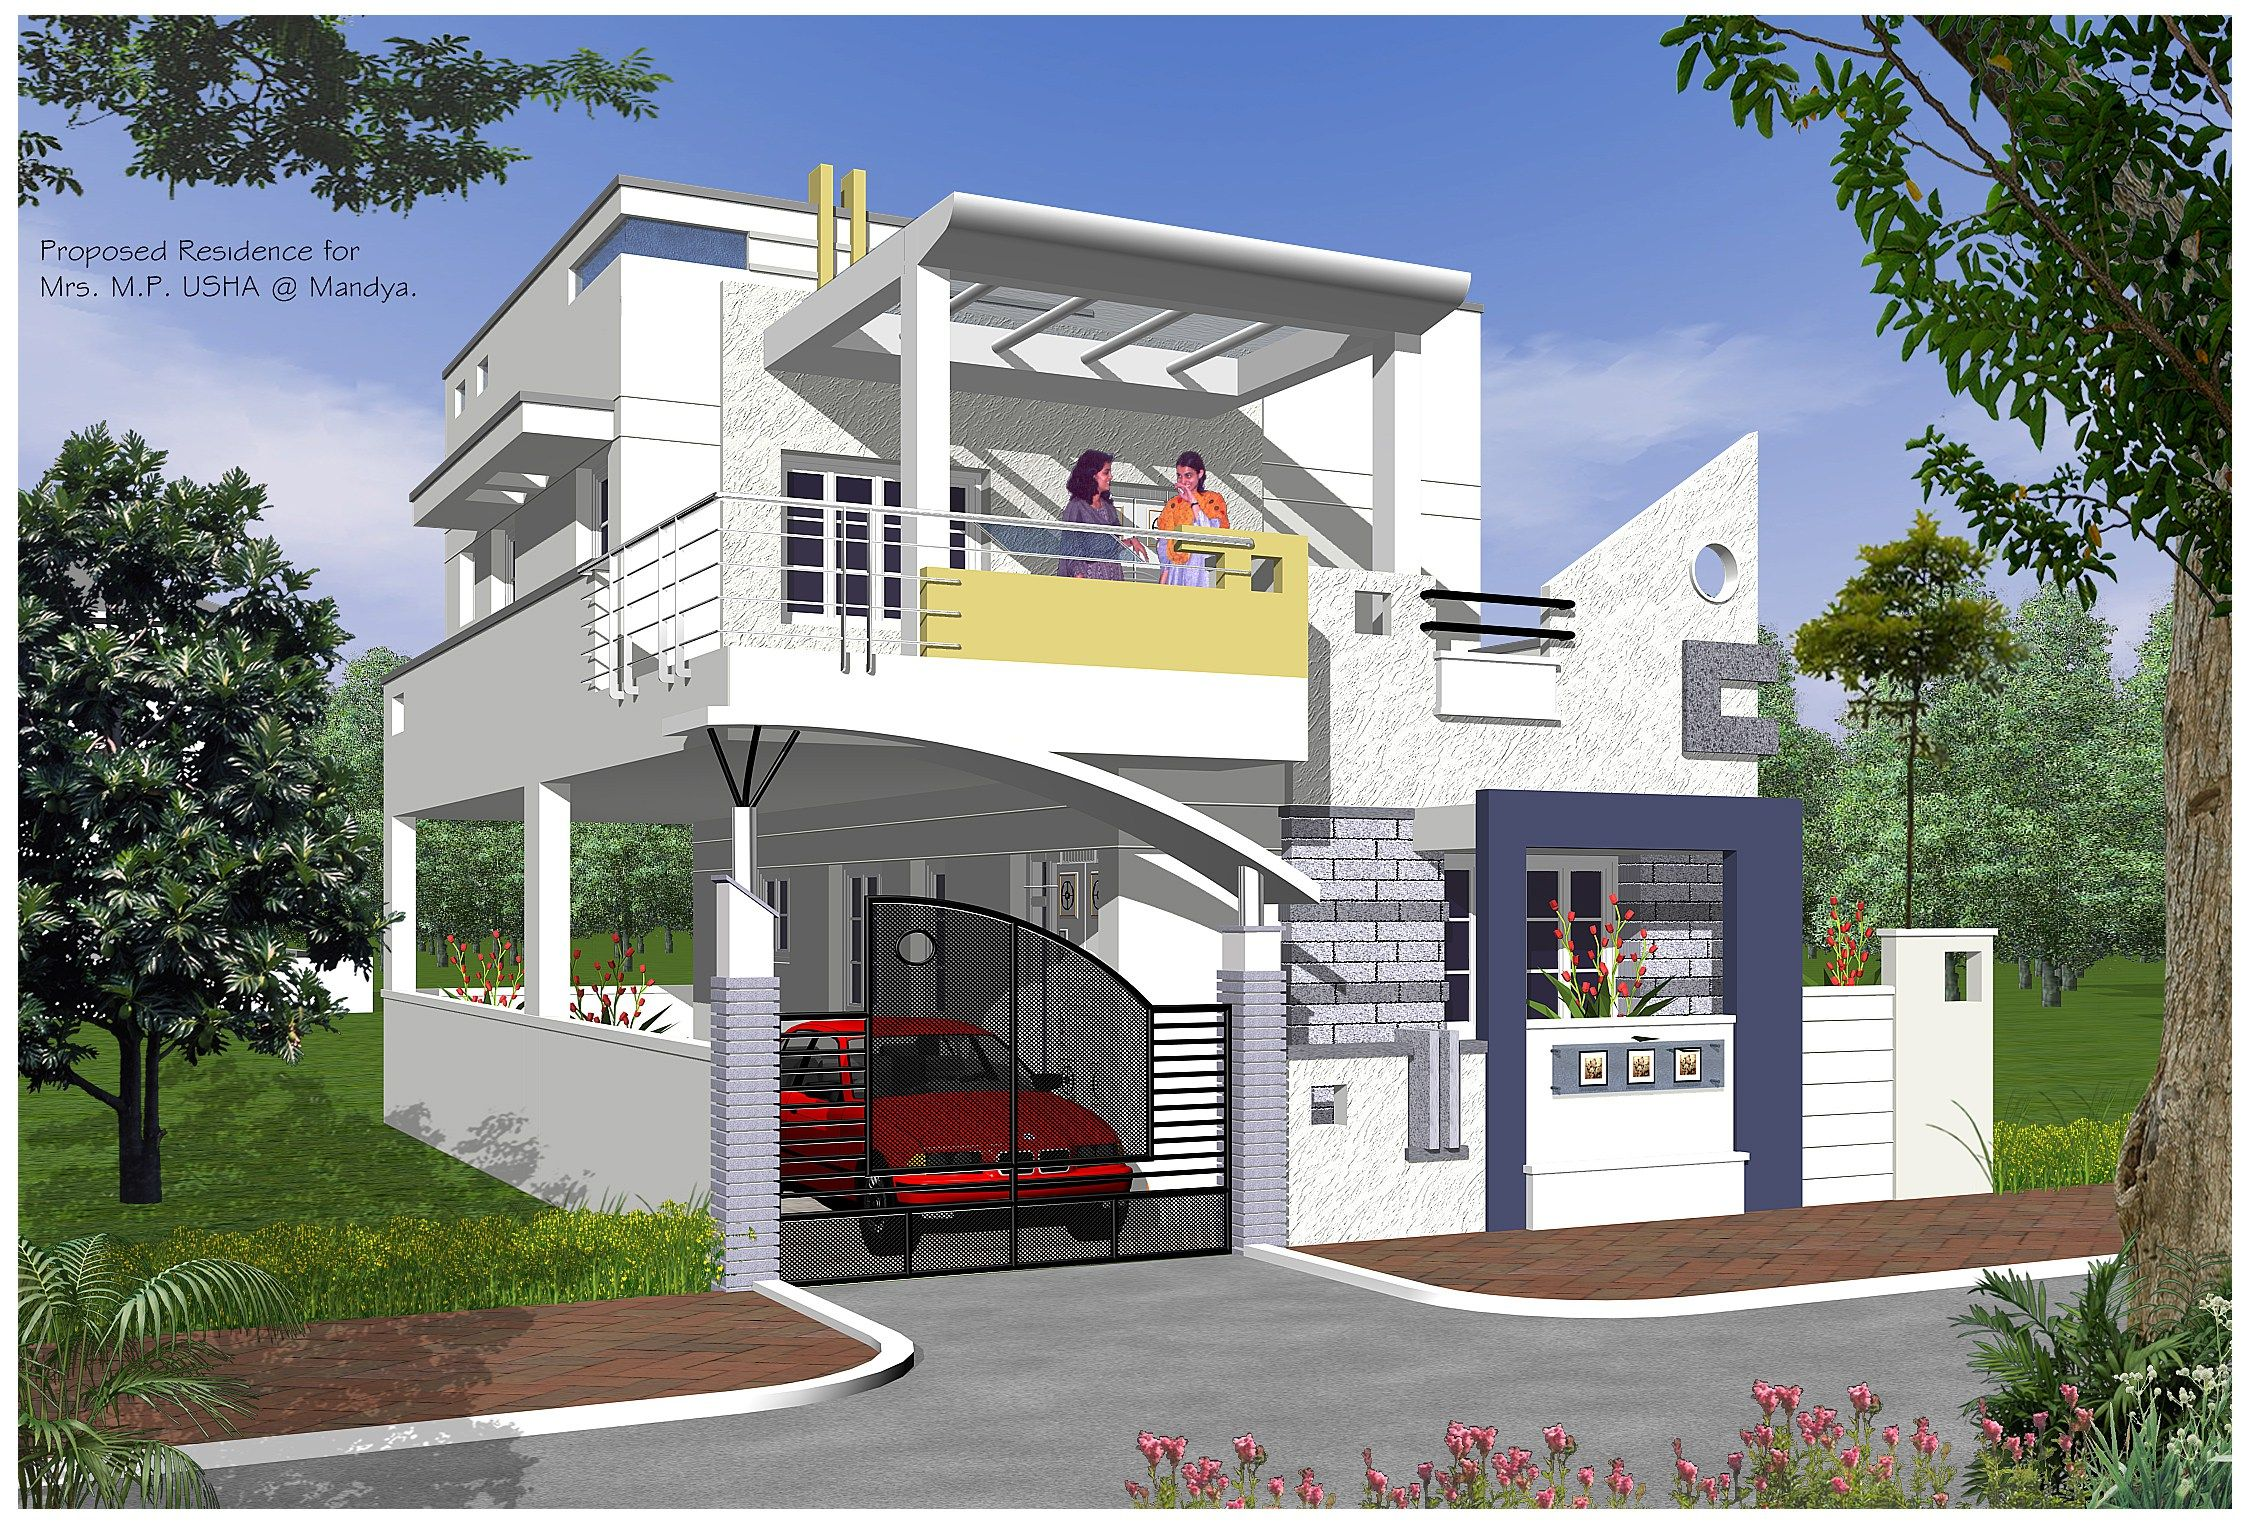 best residential house plans and designs.  Pics Photos Vastu House Plans Designs Kitchen Design Large South Shastra Spacio Furniture Best Free Home pics photos vastu house plans designs kitchen design large south